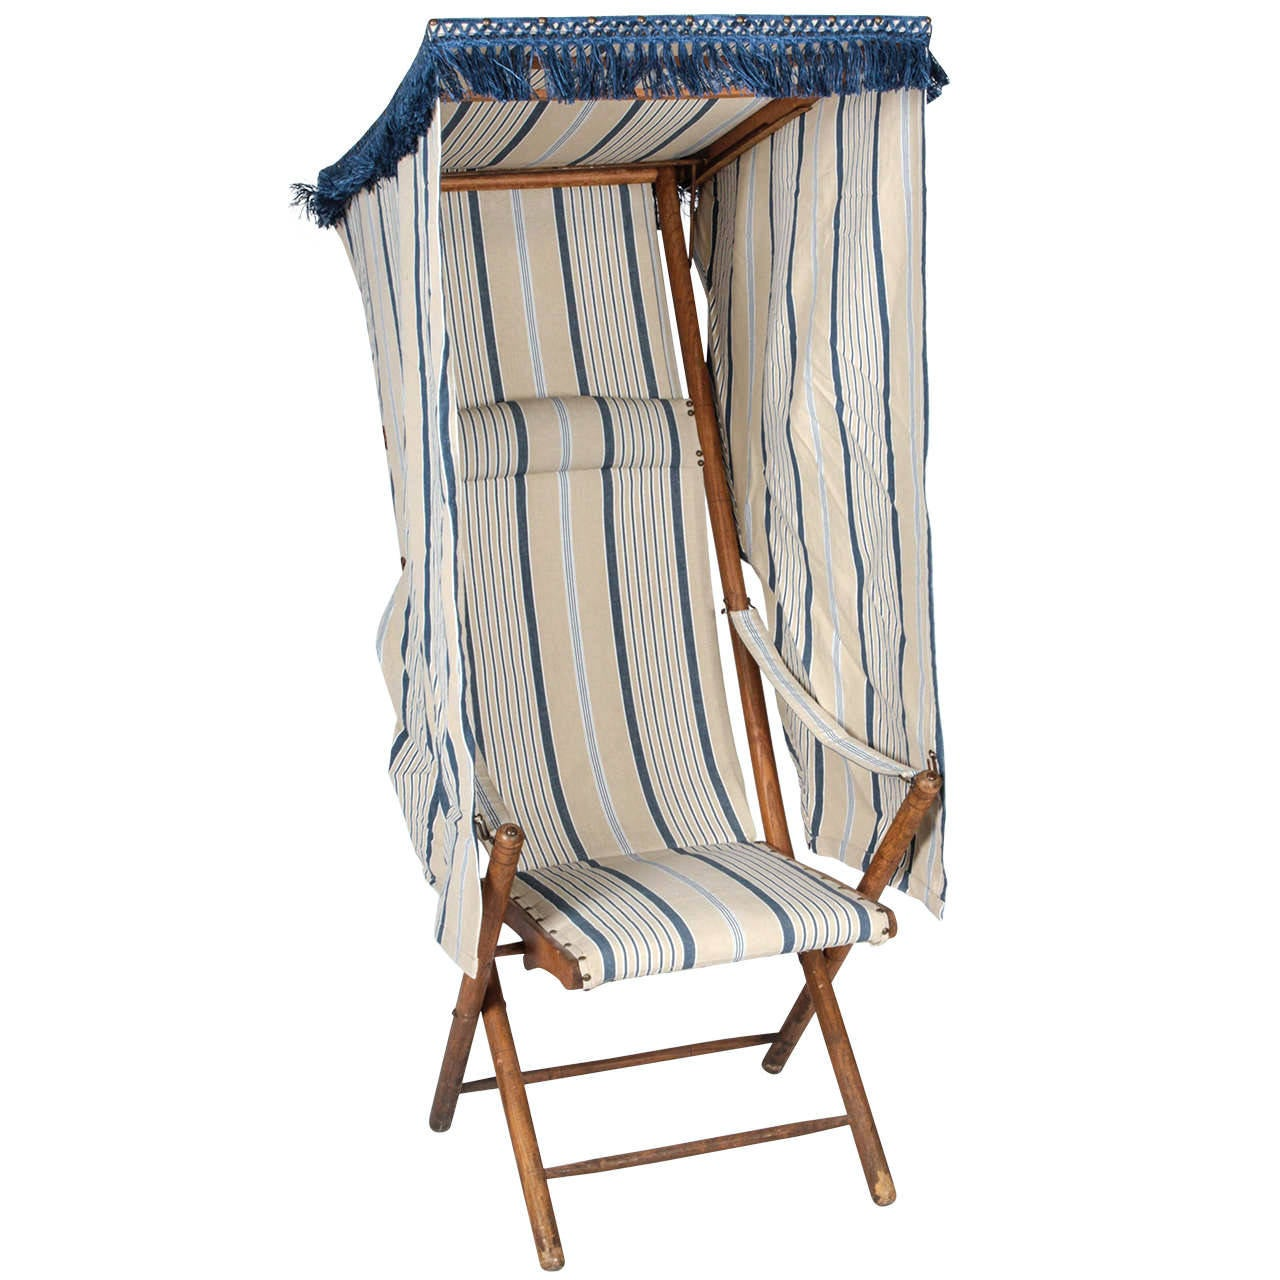 French Beach Chair with Canopy For Sale  sc 1 st  1stDibs & French Beach Chair with Canopy at 1stdibs